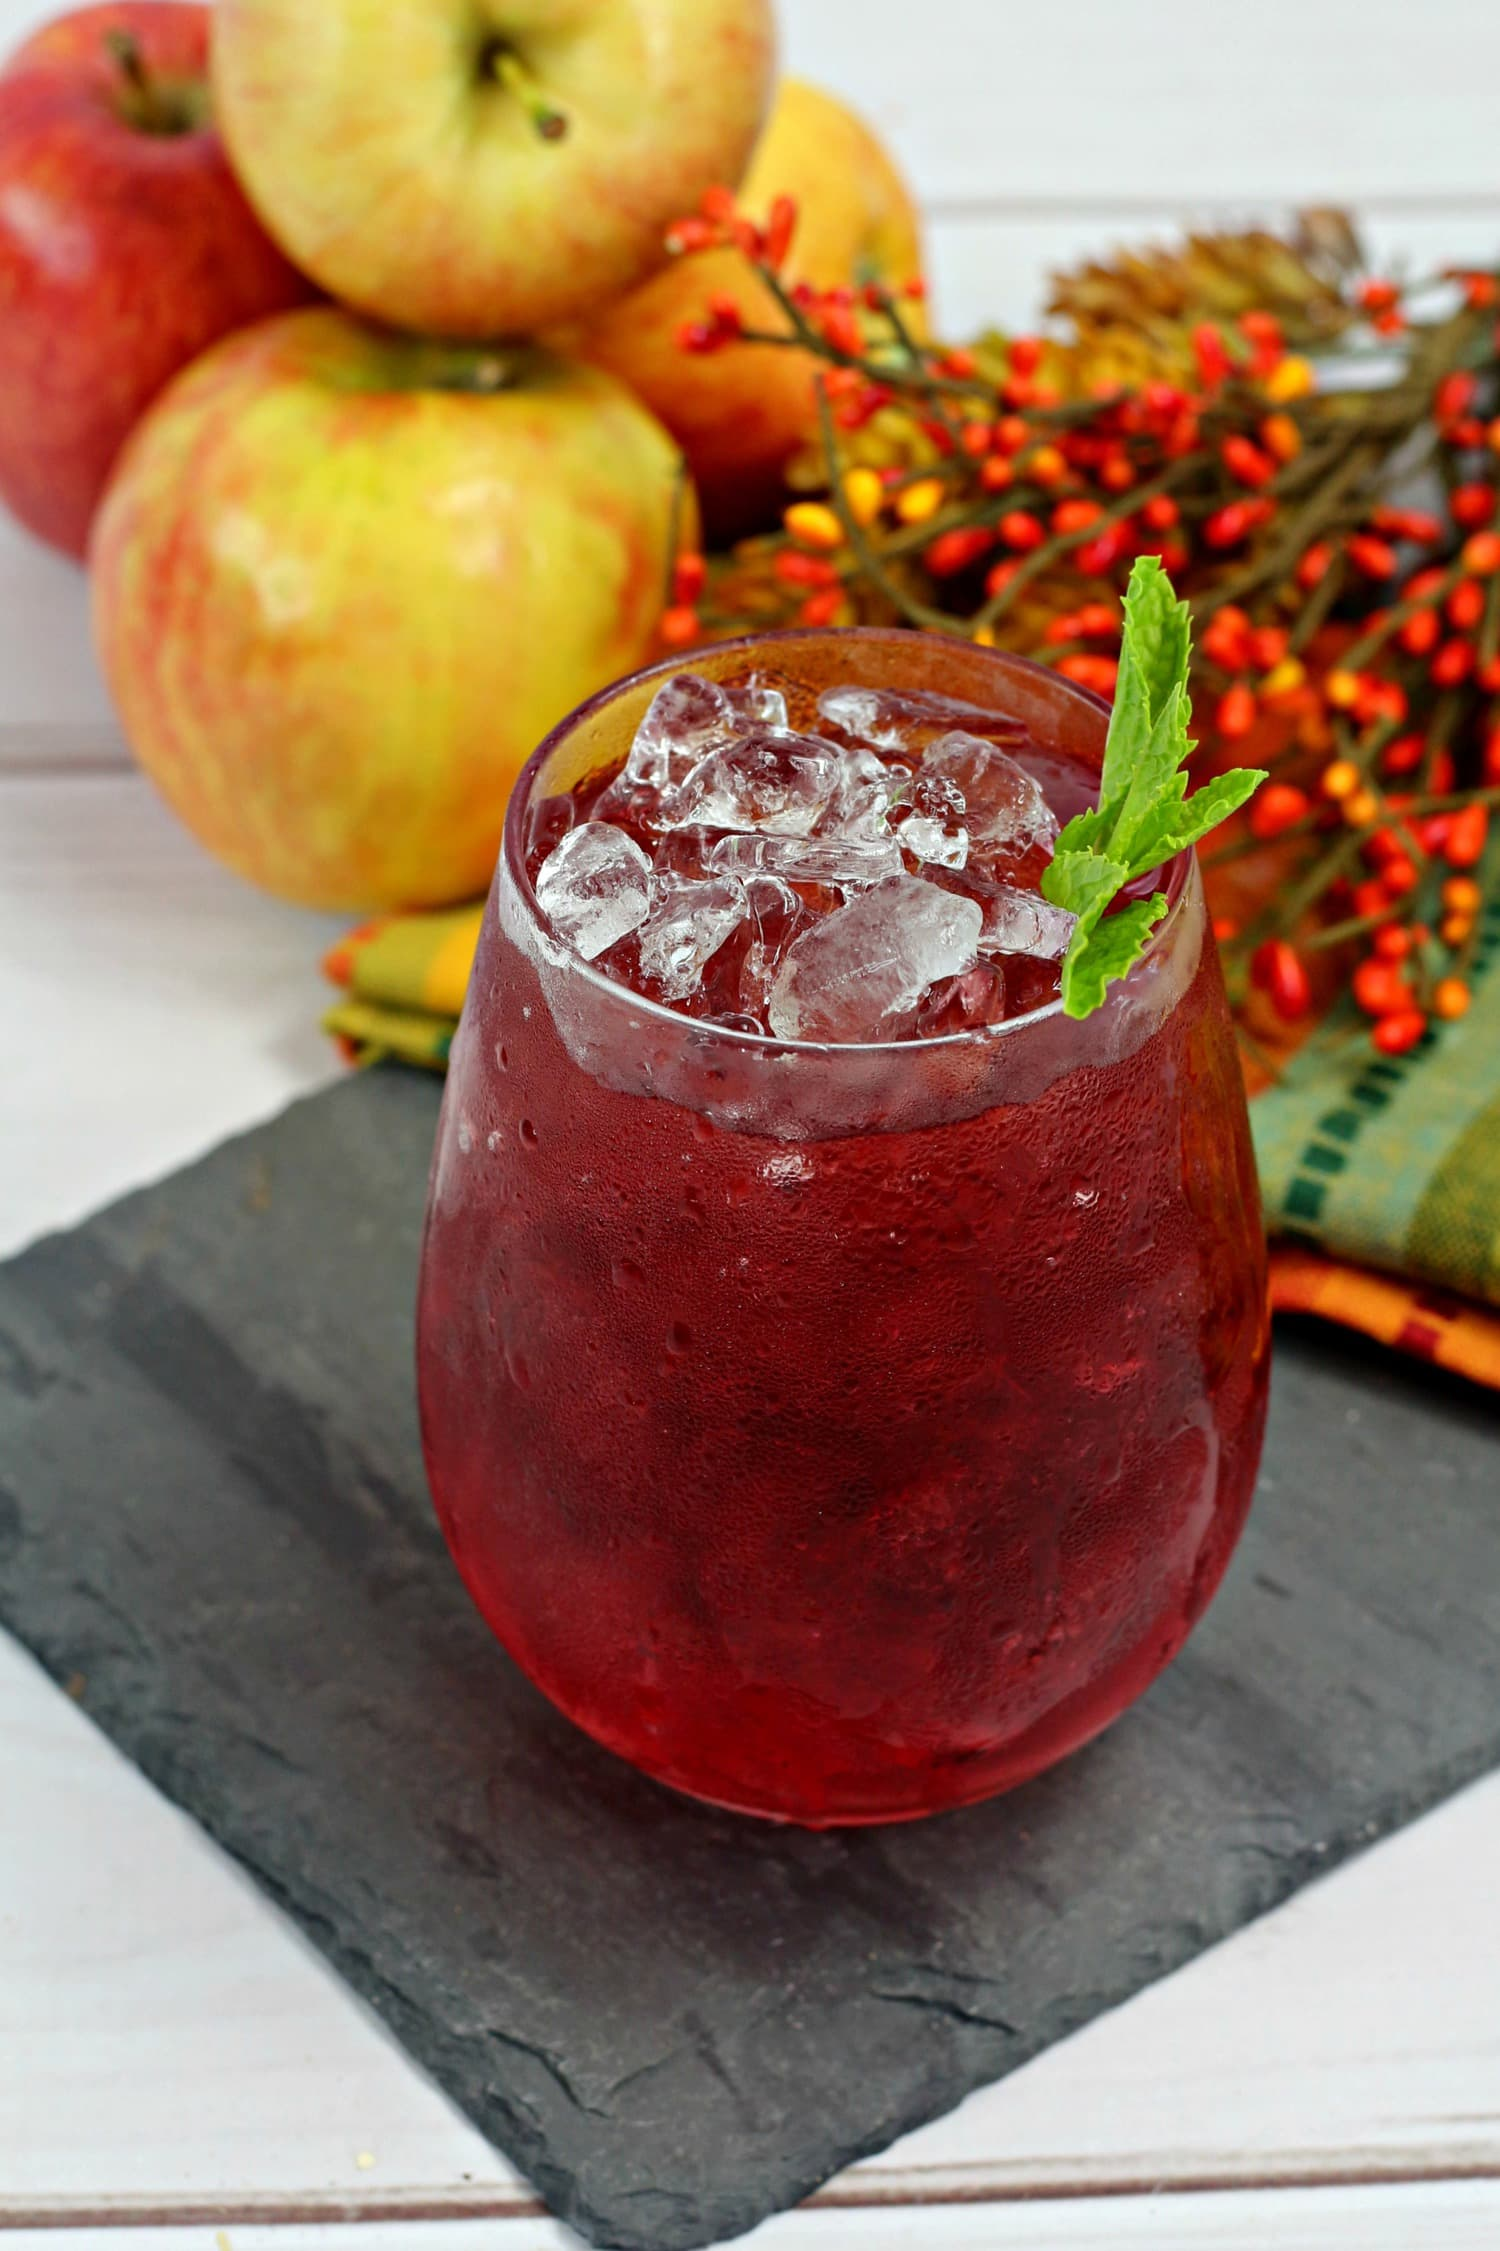 berries and apples make for a delightful rum-based cocktail